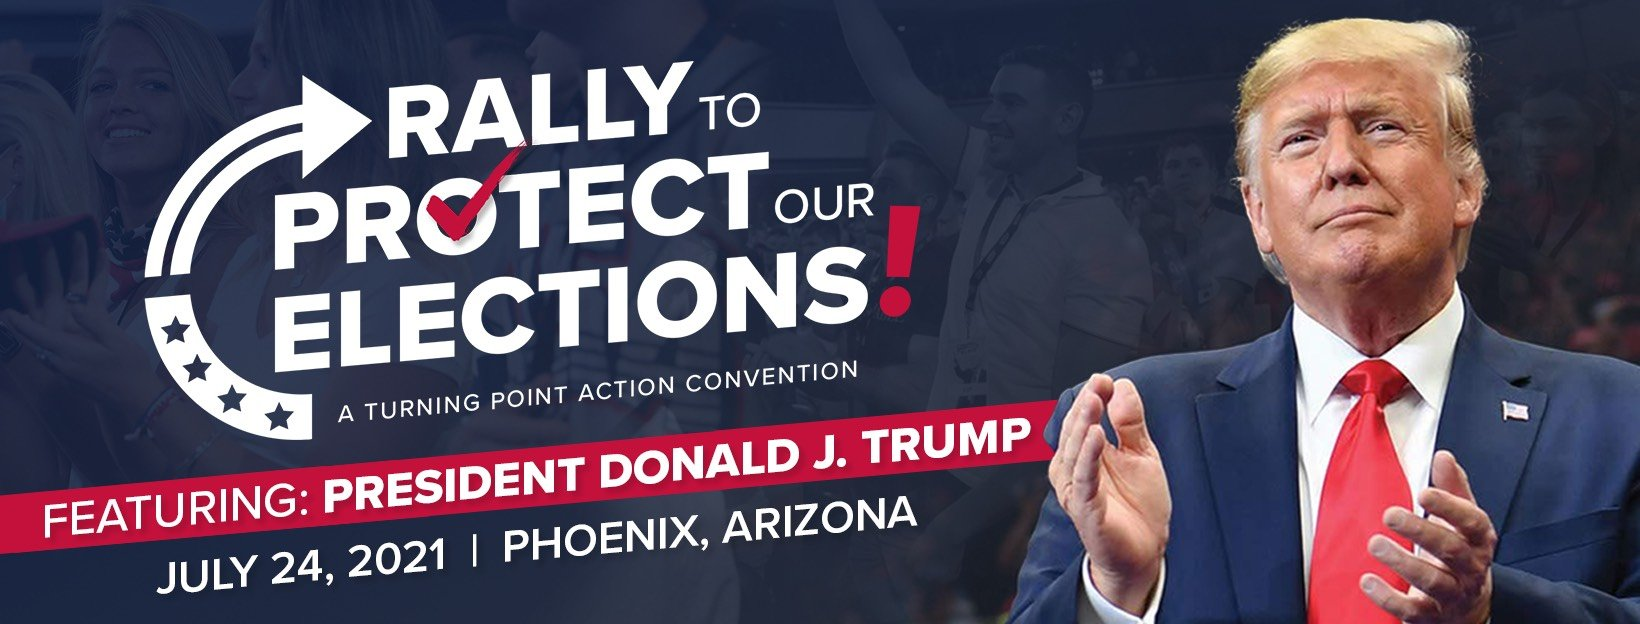 RSBN: Protect our Elections Rally in Phoenix, AZ